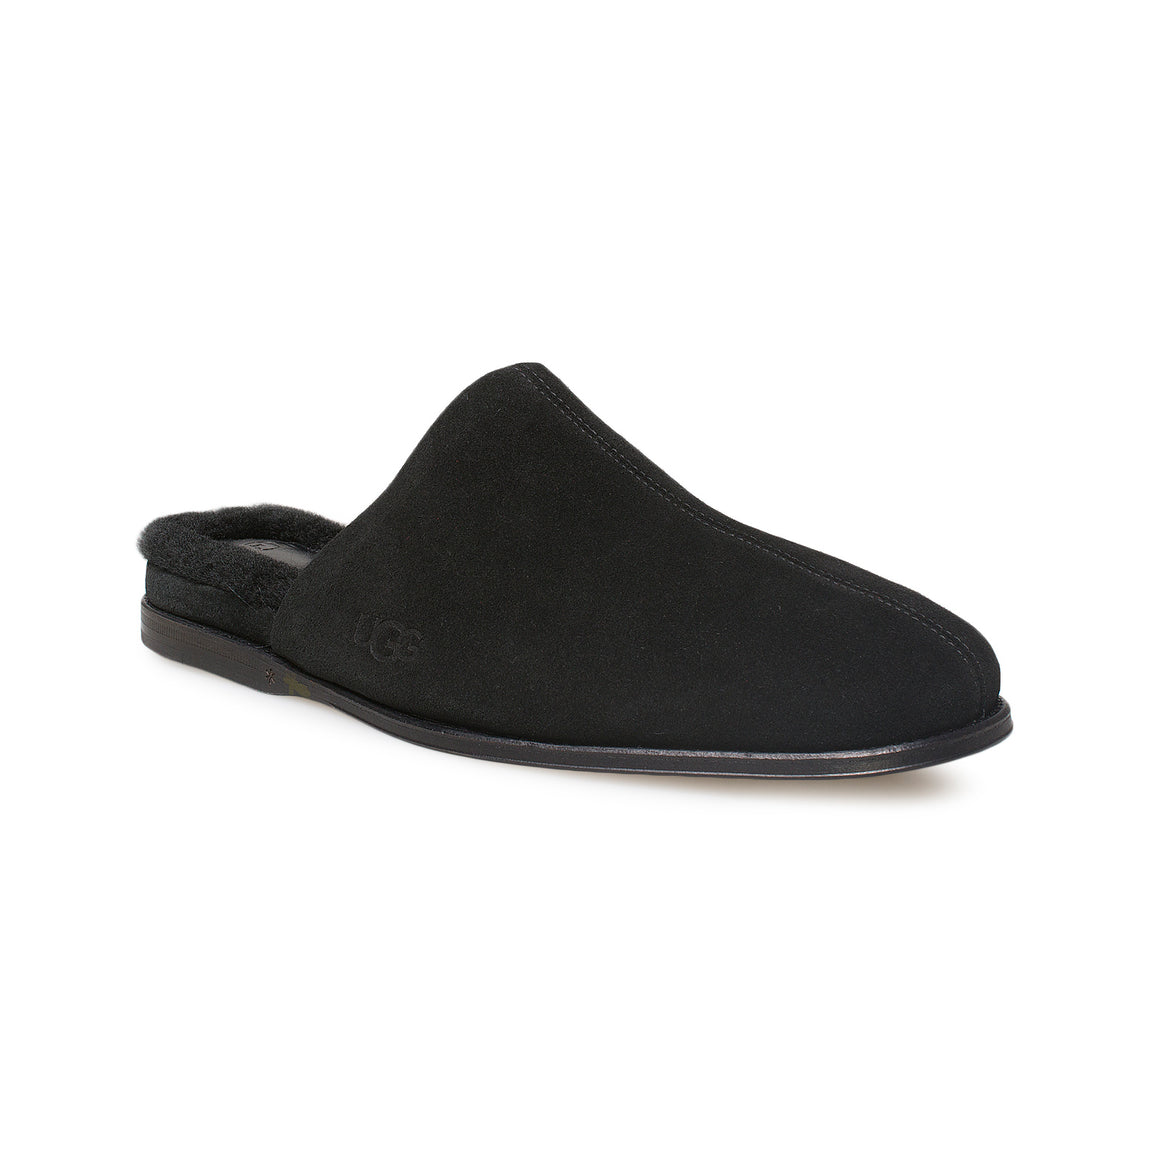 UGG Chateau Black Slip On - Women's